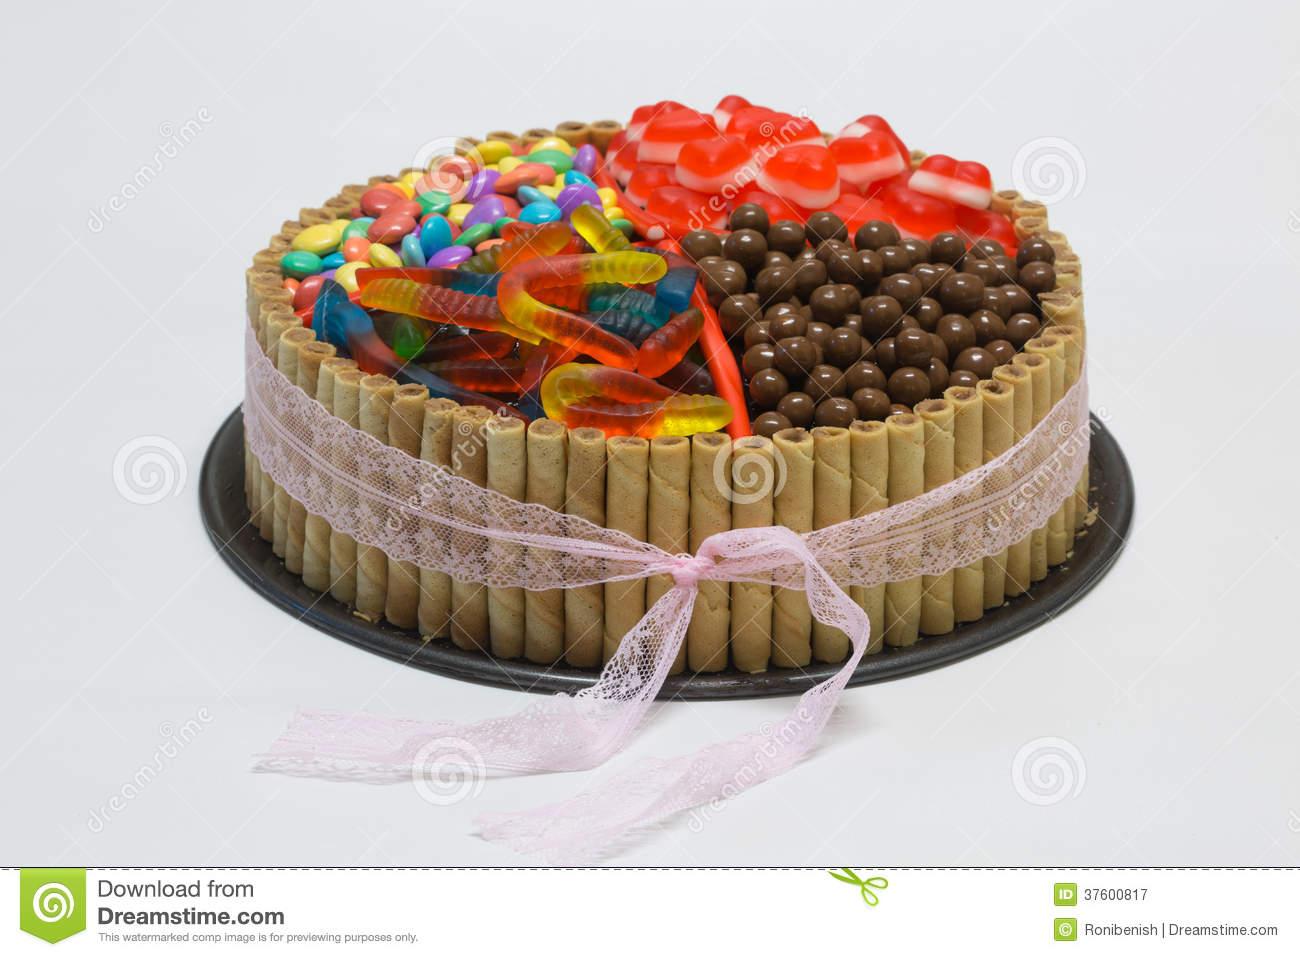 Chocolate Birthday Cake With Candy On Top Stock Image